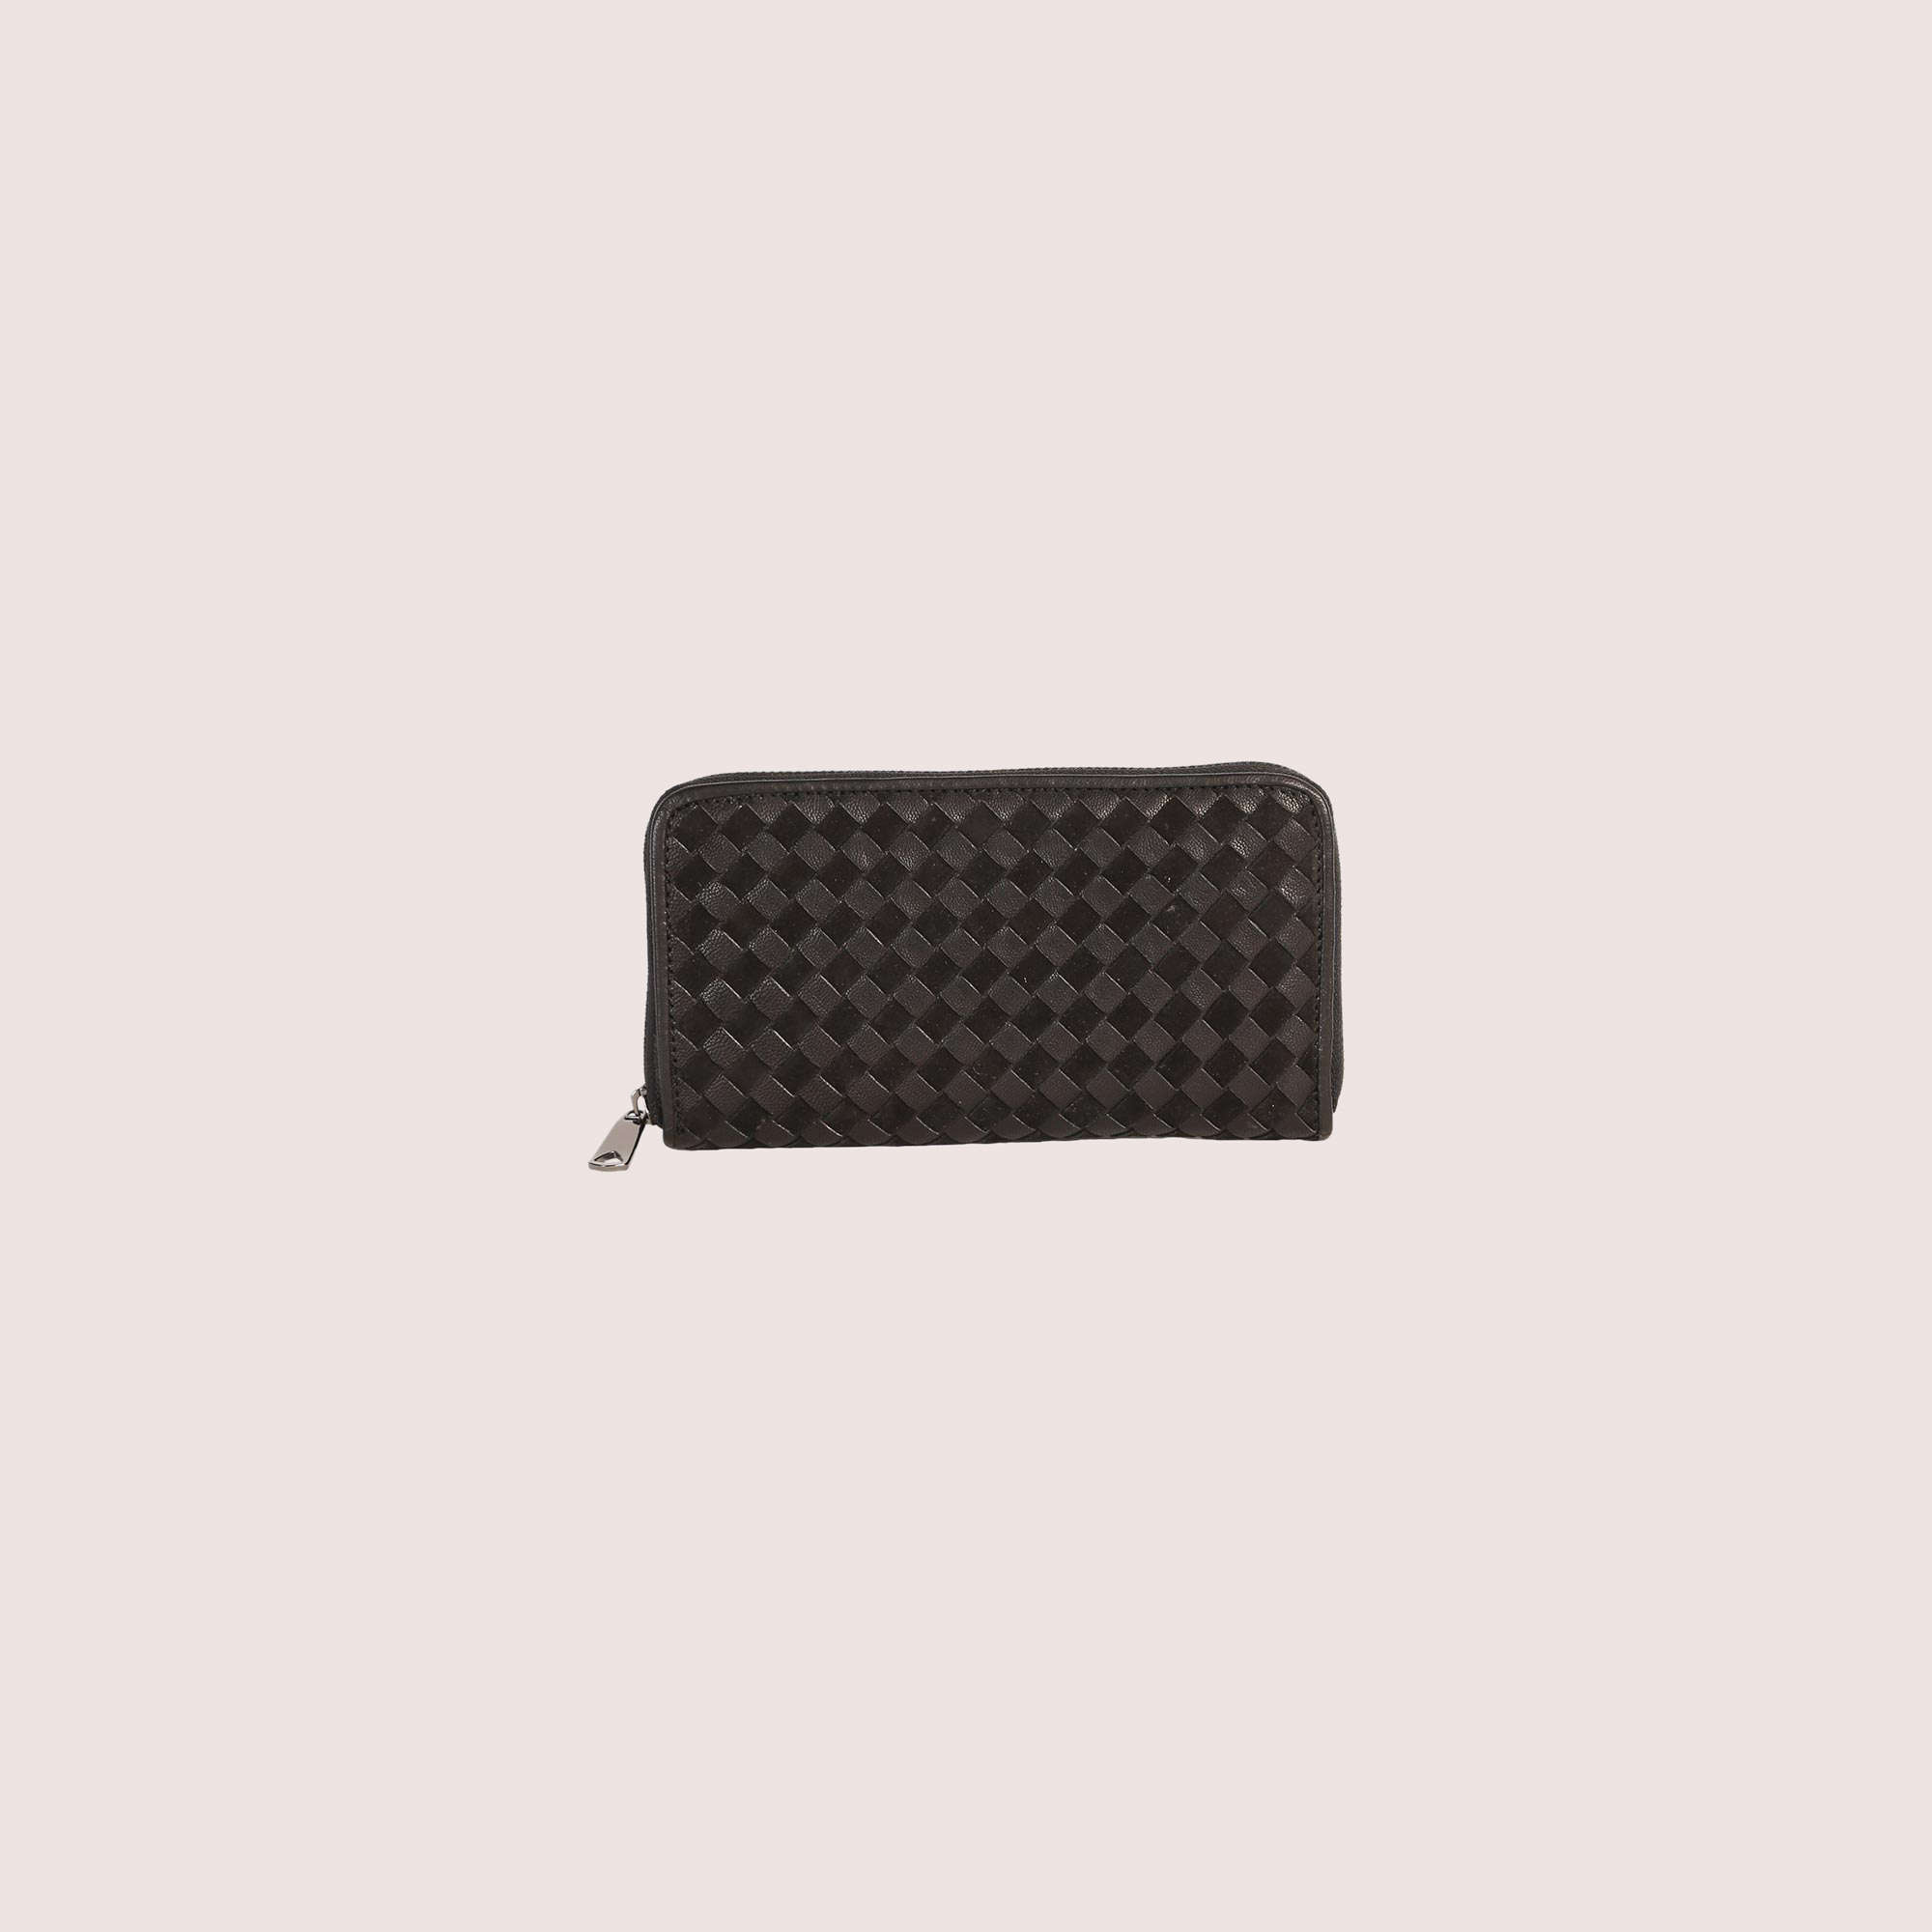 Nikki Woven Leather Wallet